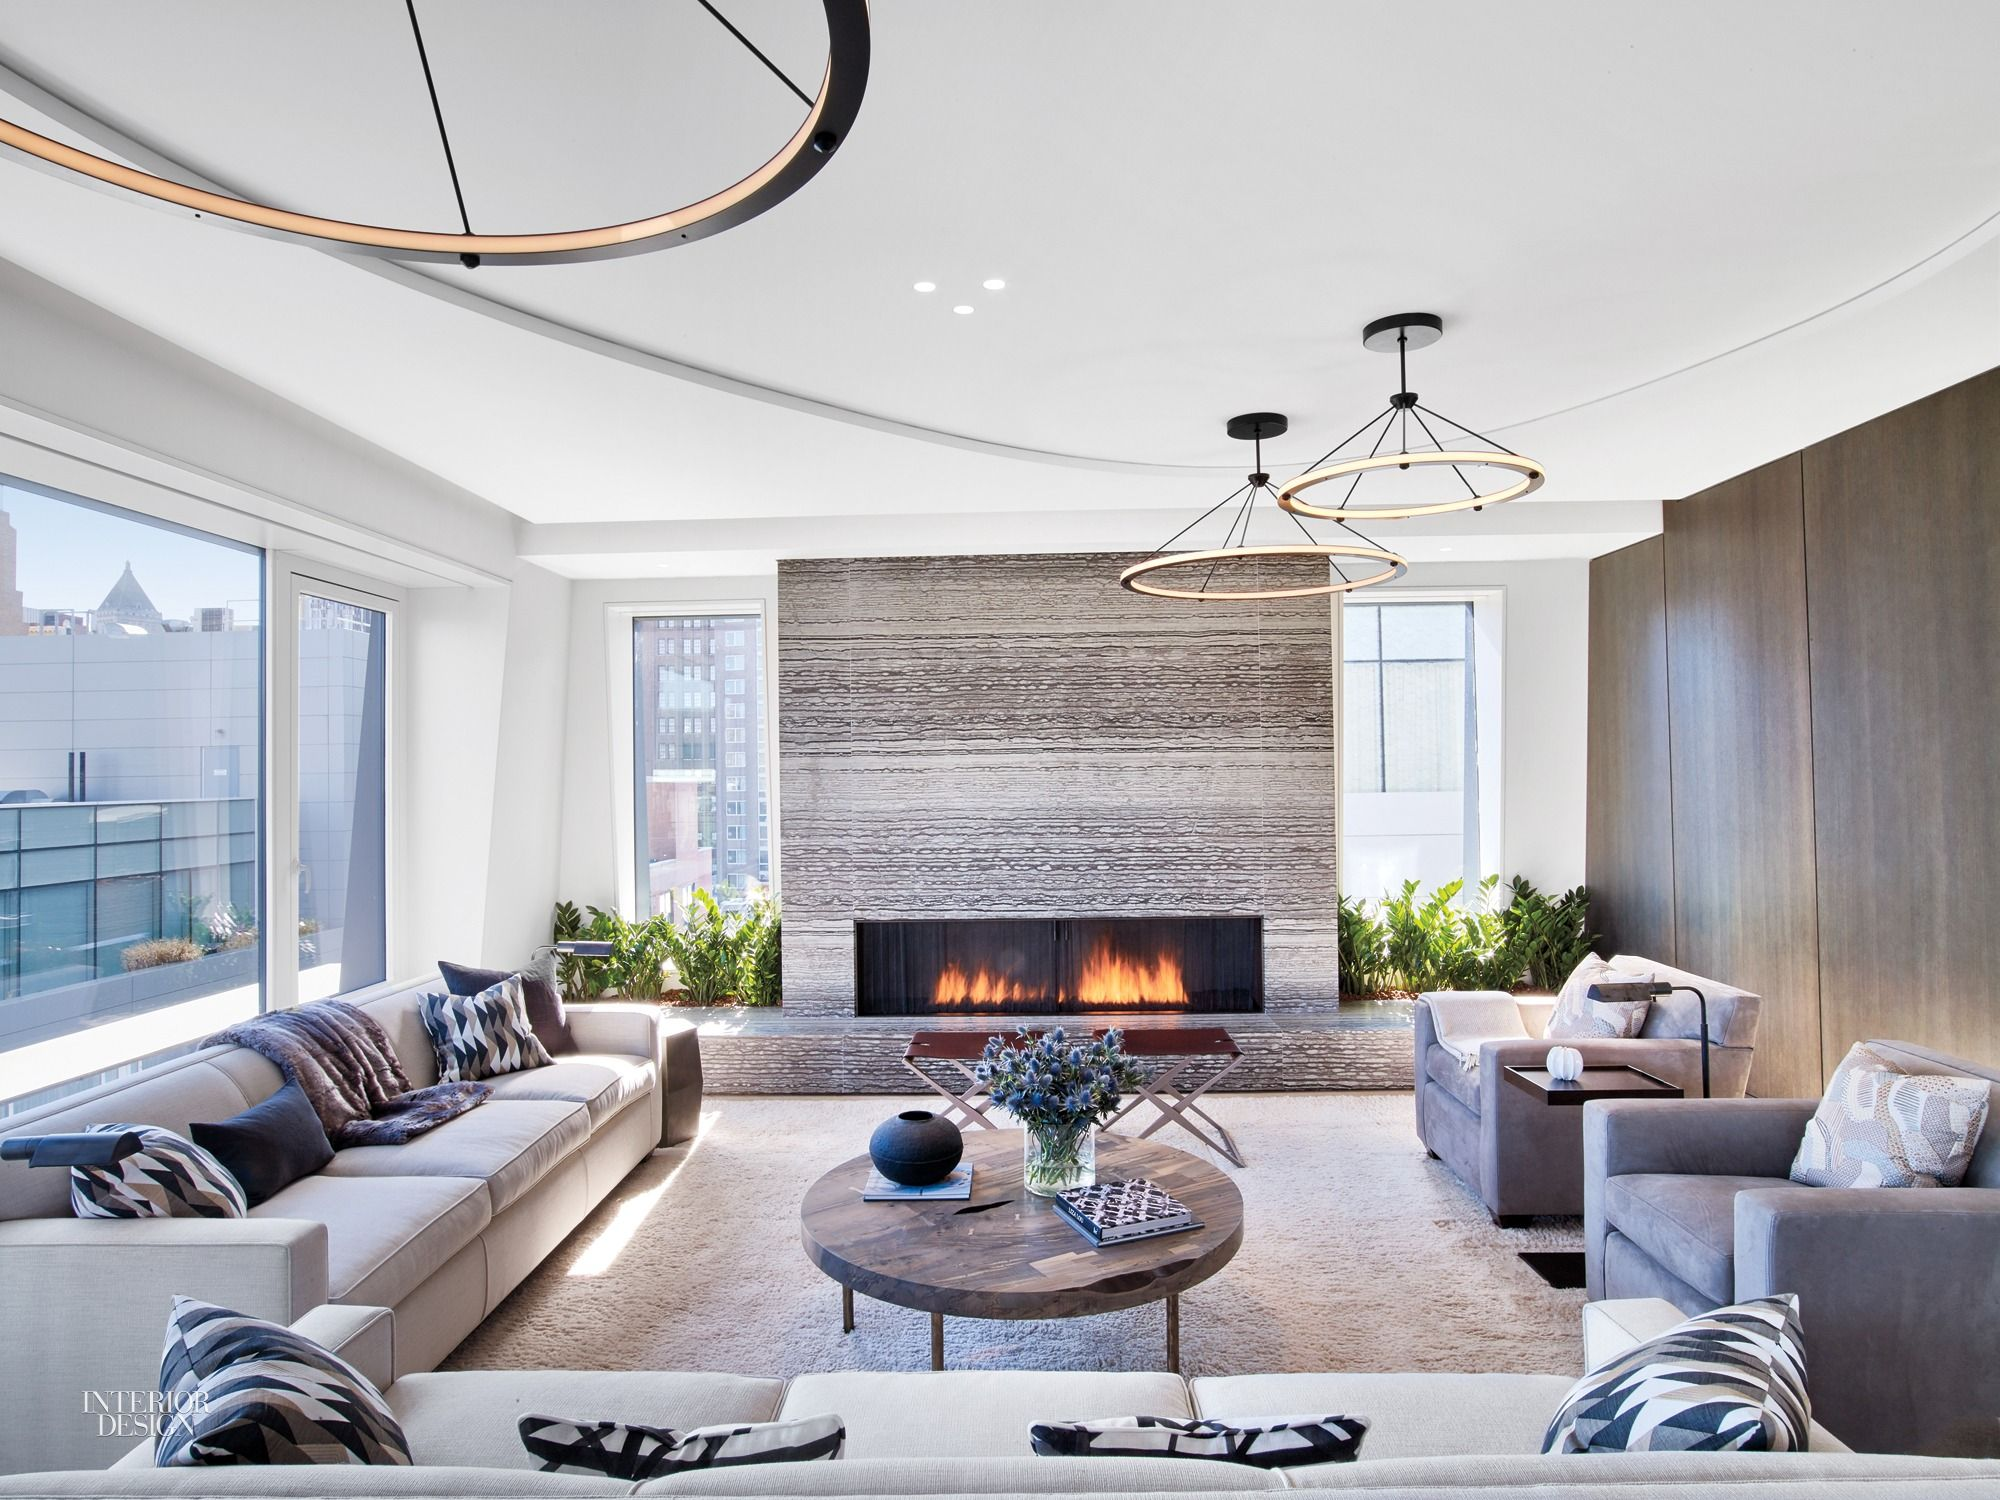 Centered fireplace surrounded by striated bosco marble home living room area interior architecture also simply amazing fireplaces pinterest pent house rh